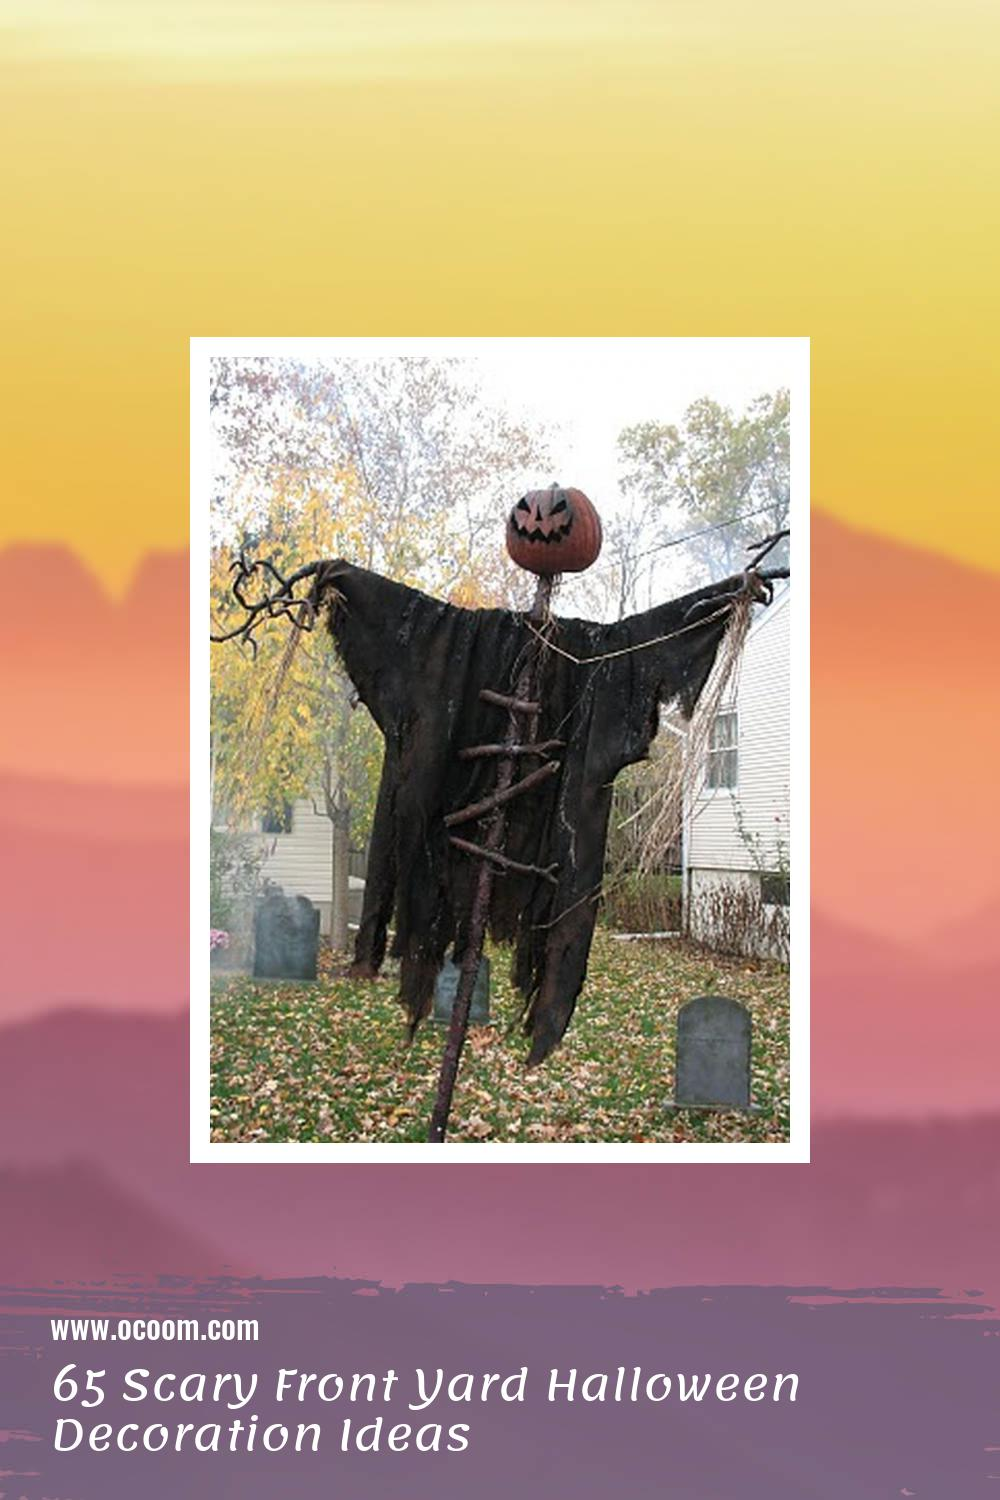 65 Scary Front Yard Halloween Decoration Ideas 39